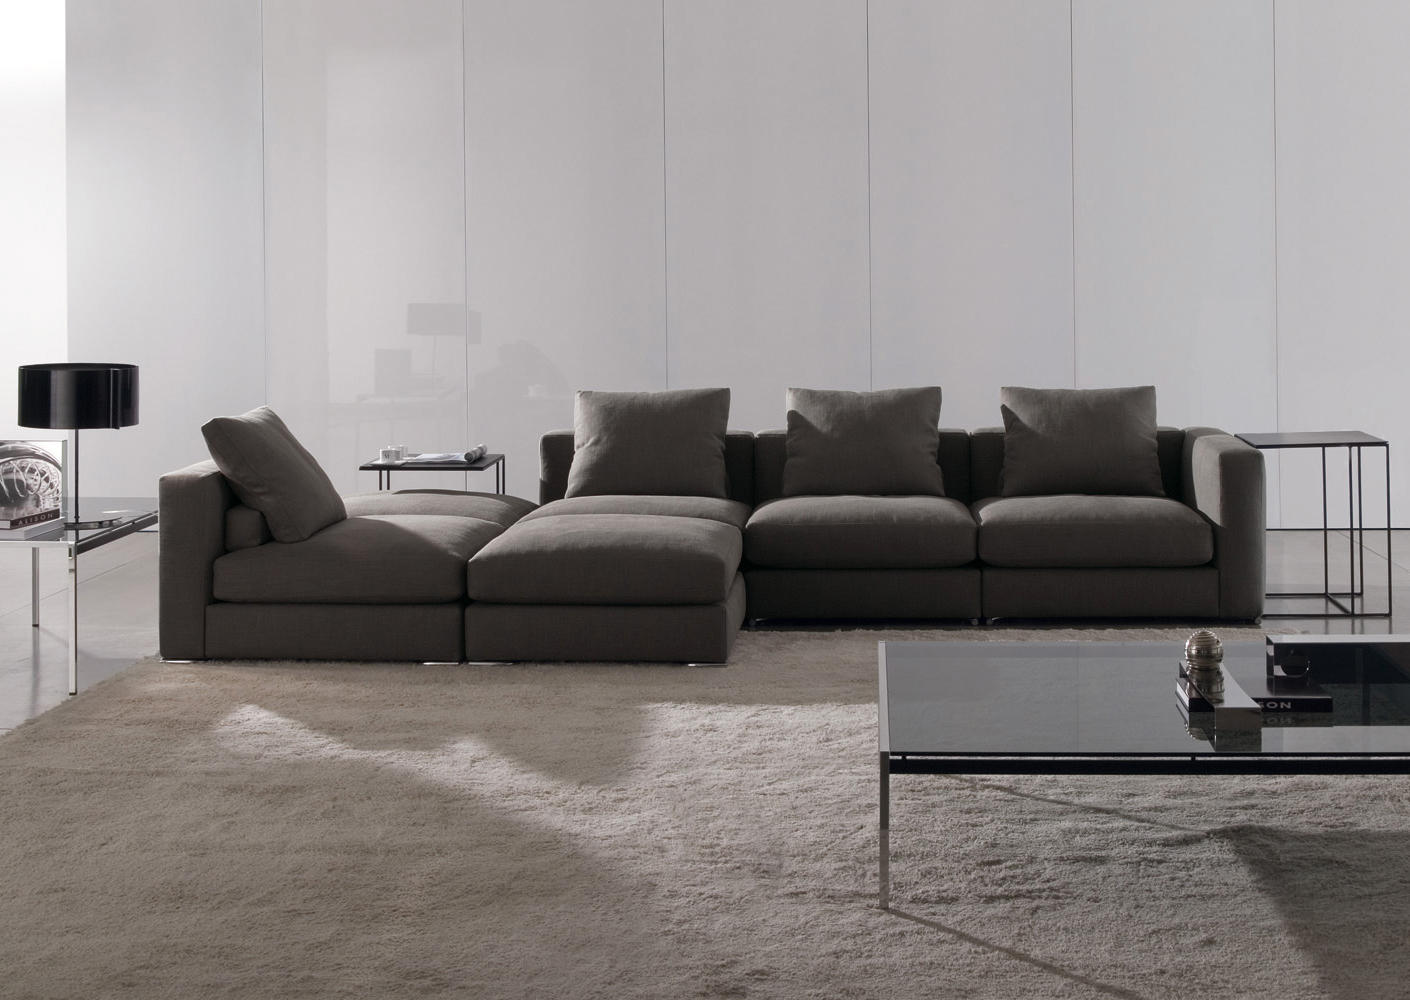 Jagger lounge sofas from minotti architonic for Minotti divani